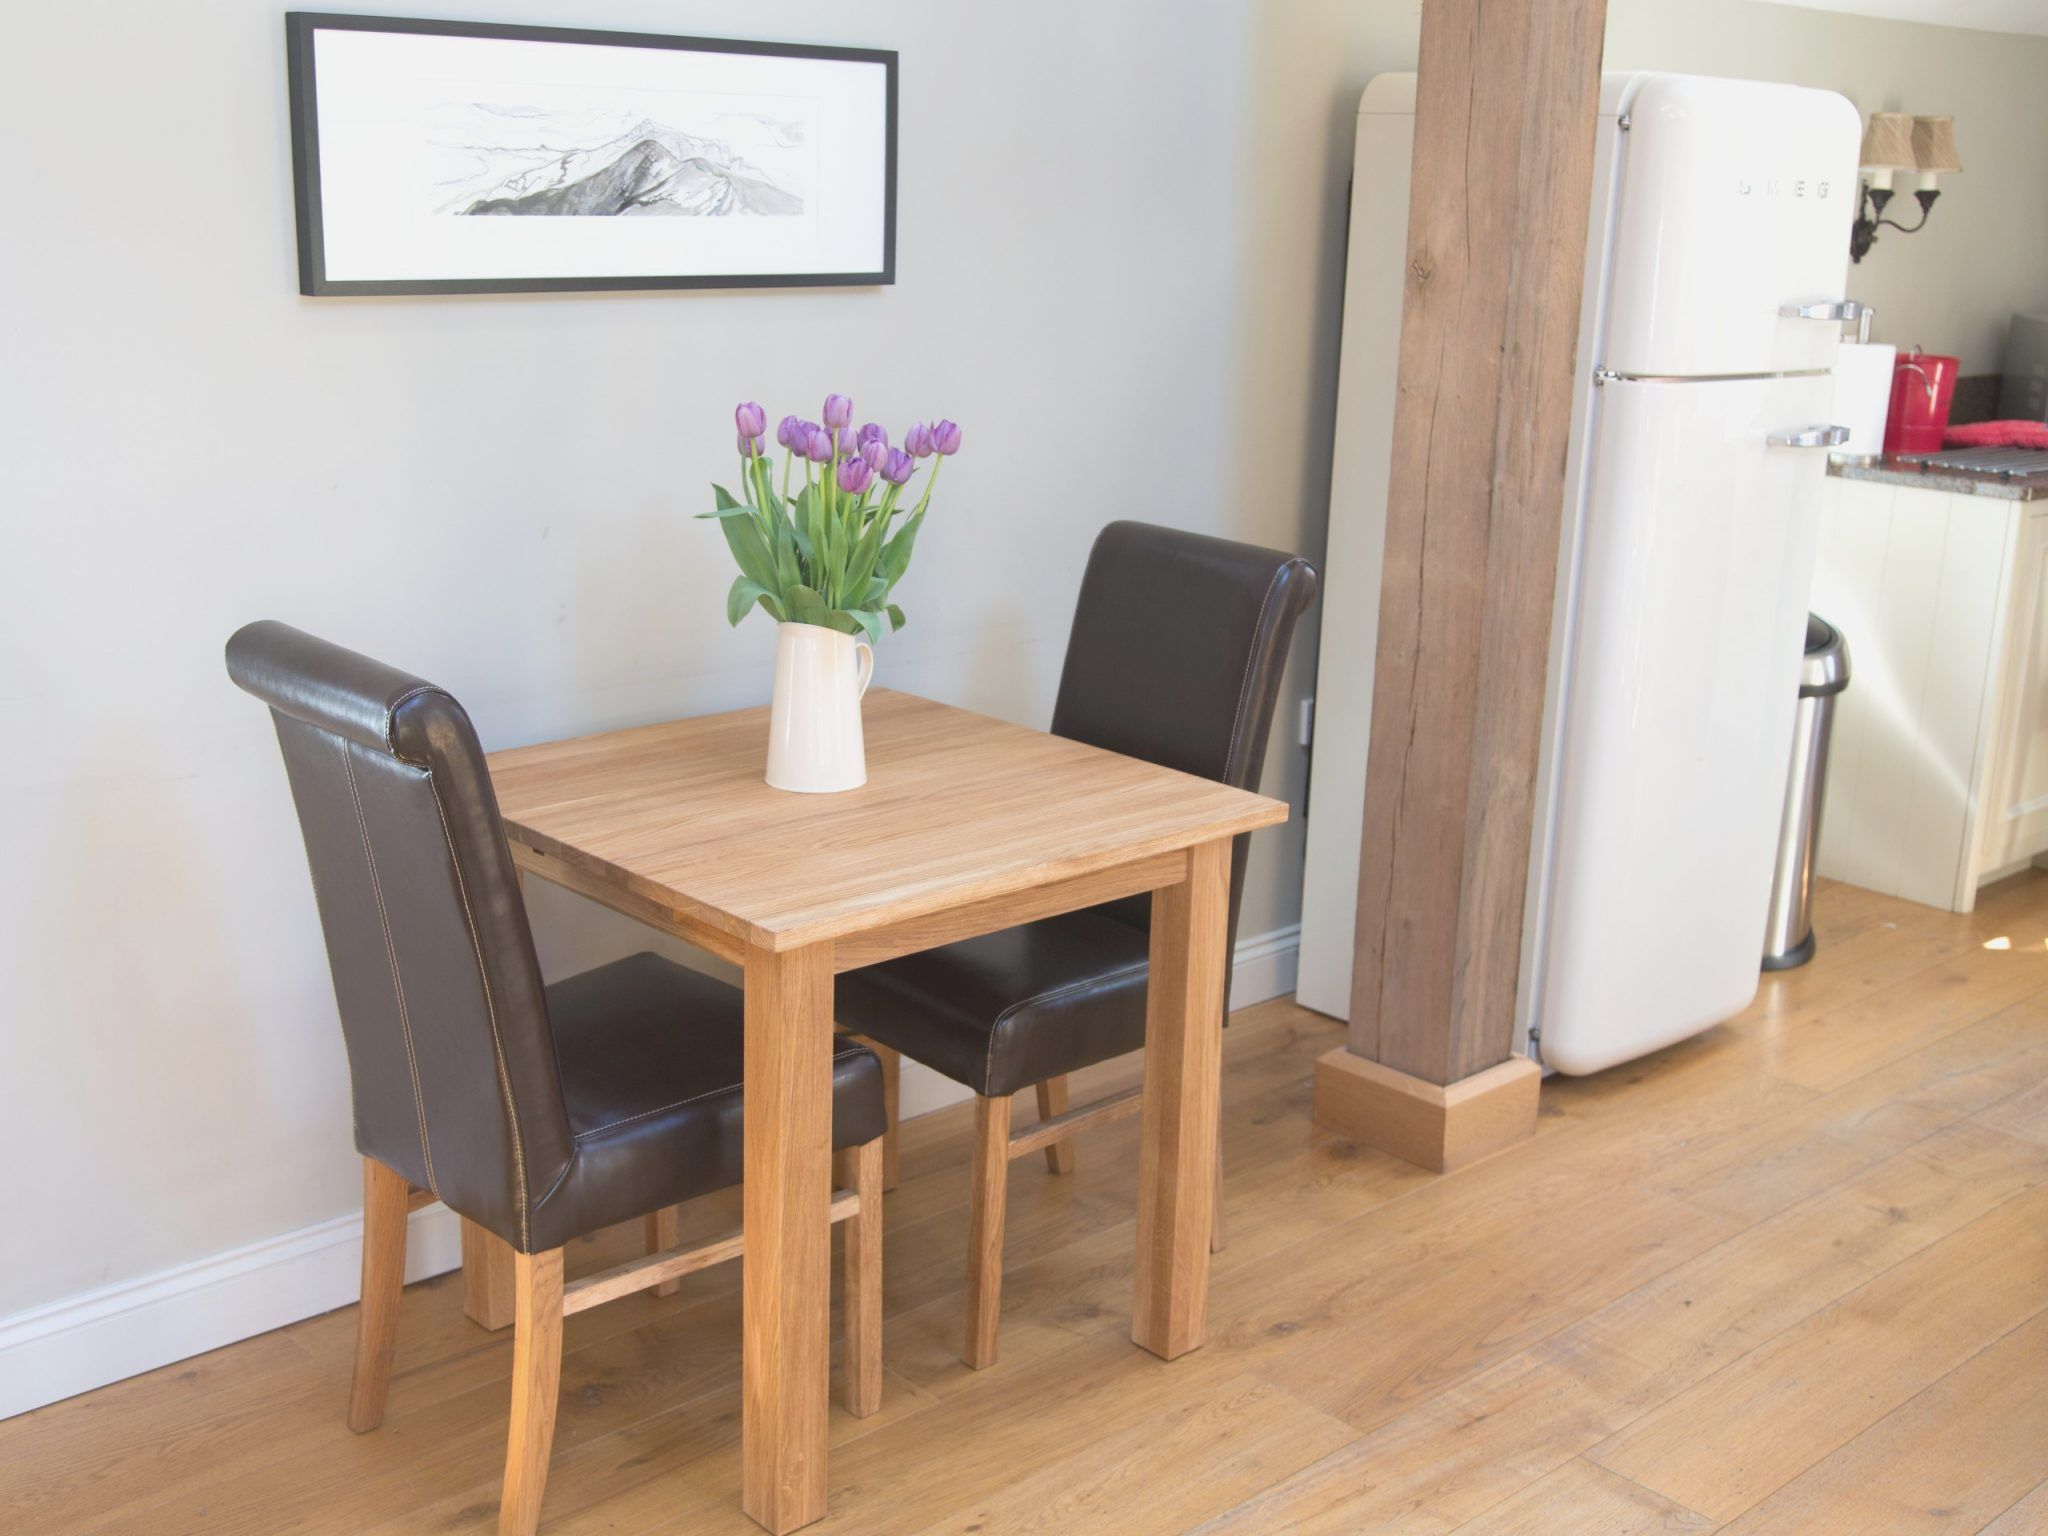 Small kitchen table and 2 chairs  Small Kitchen Table with  Chairs  kitchen table with  chairs and